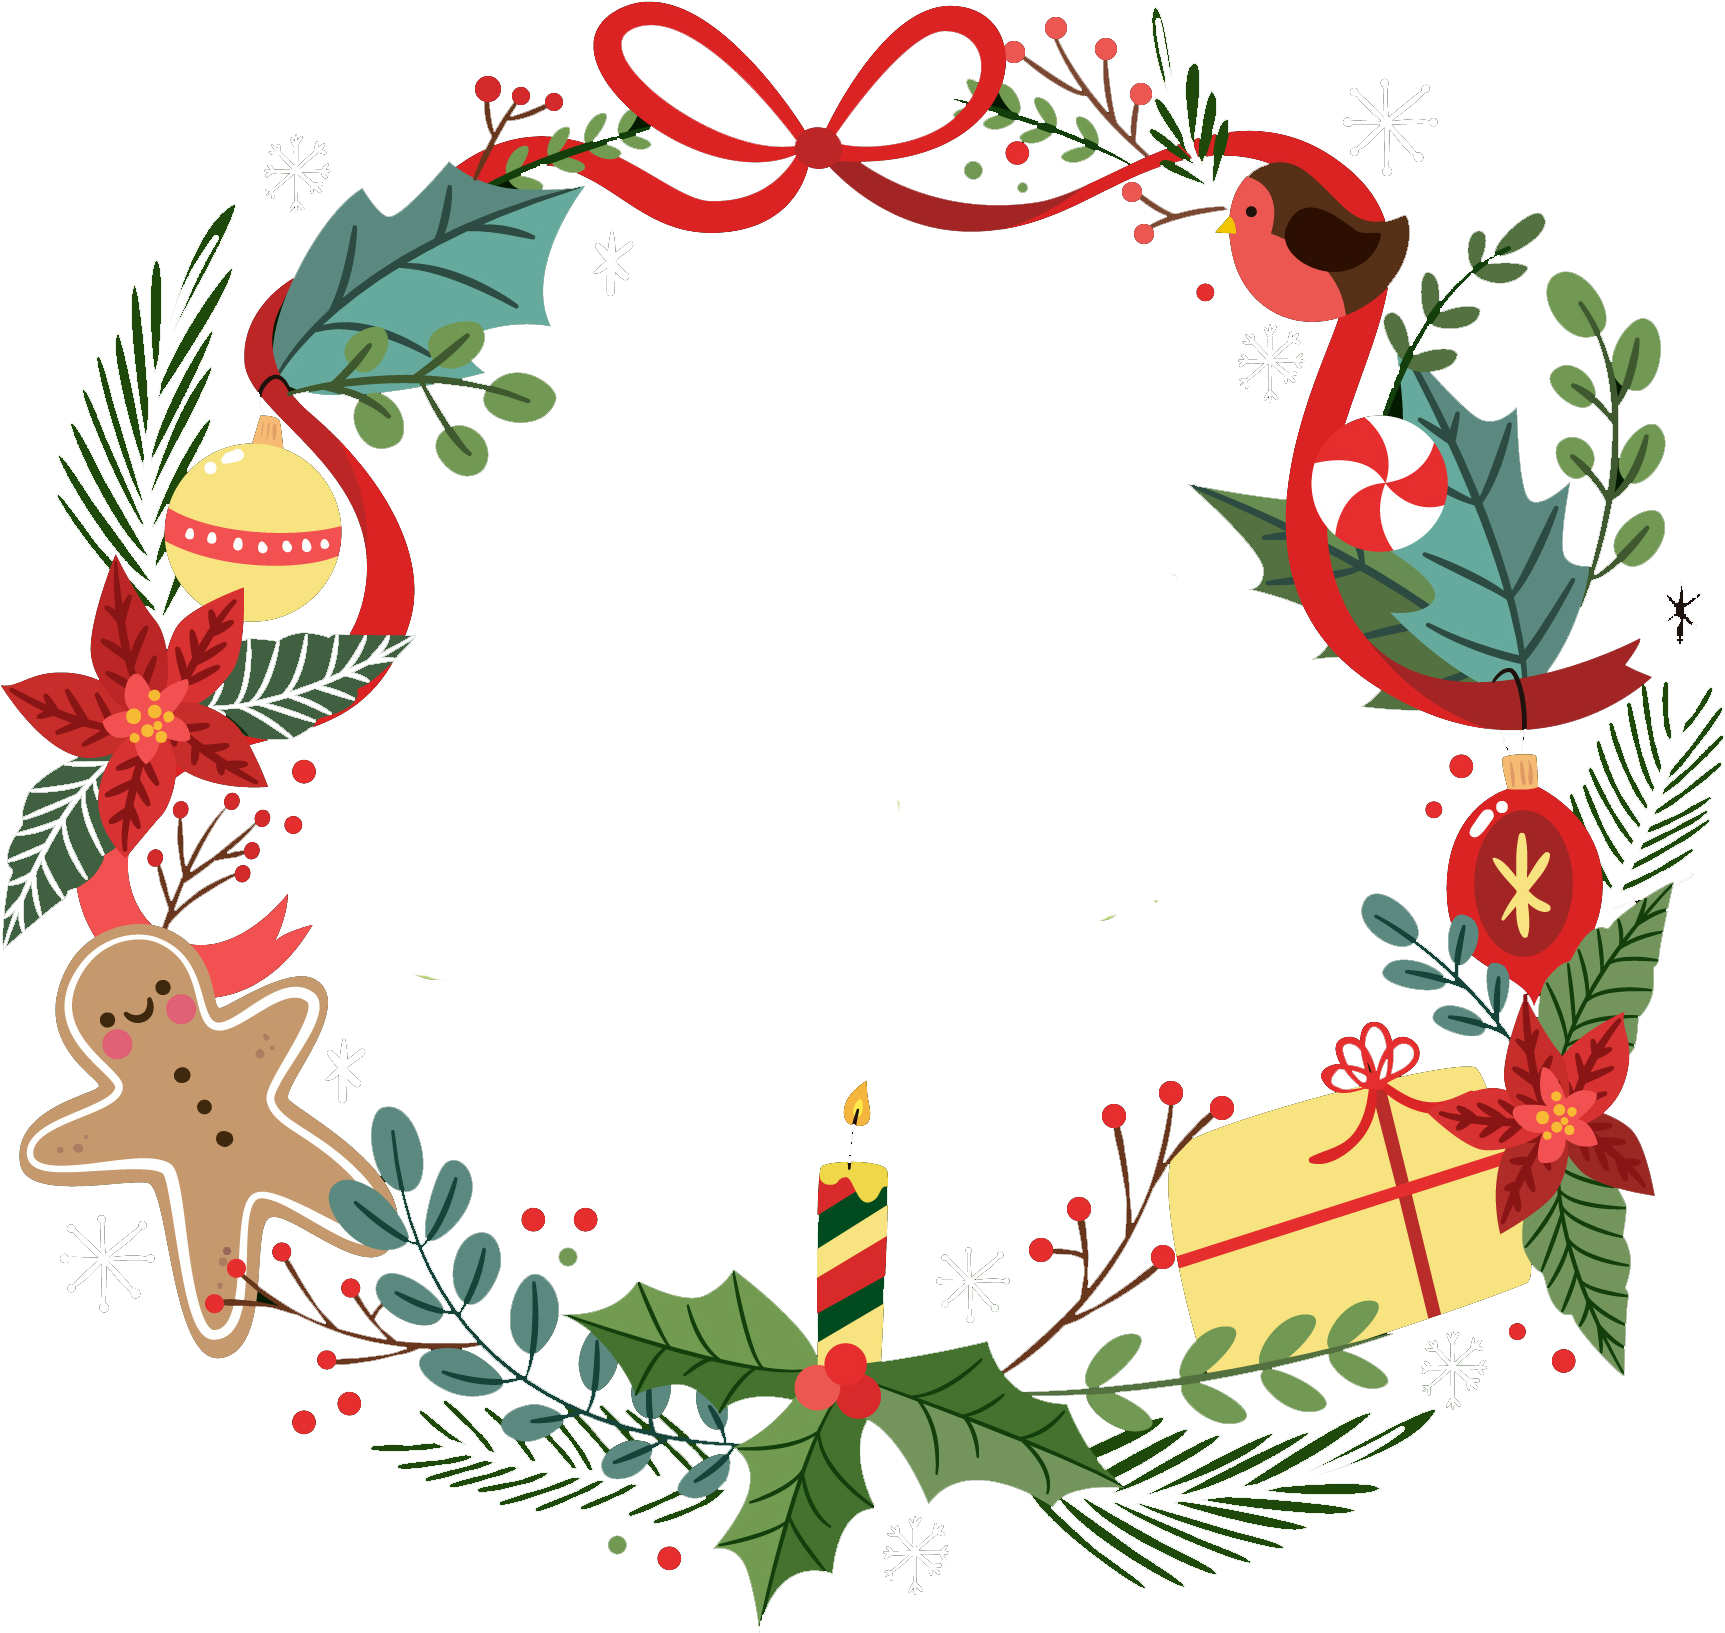 Christmas Garland Vector Png Clipart Full Size Clipart 1679411